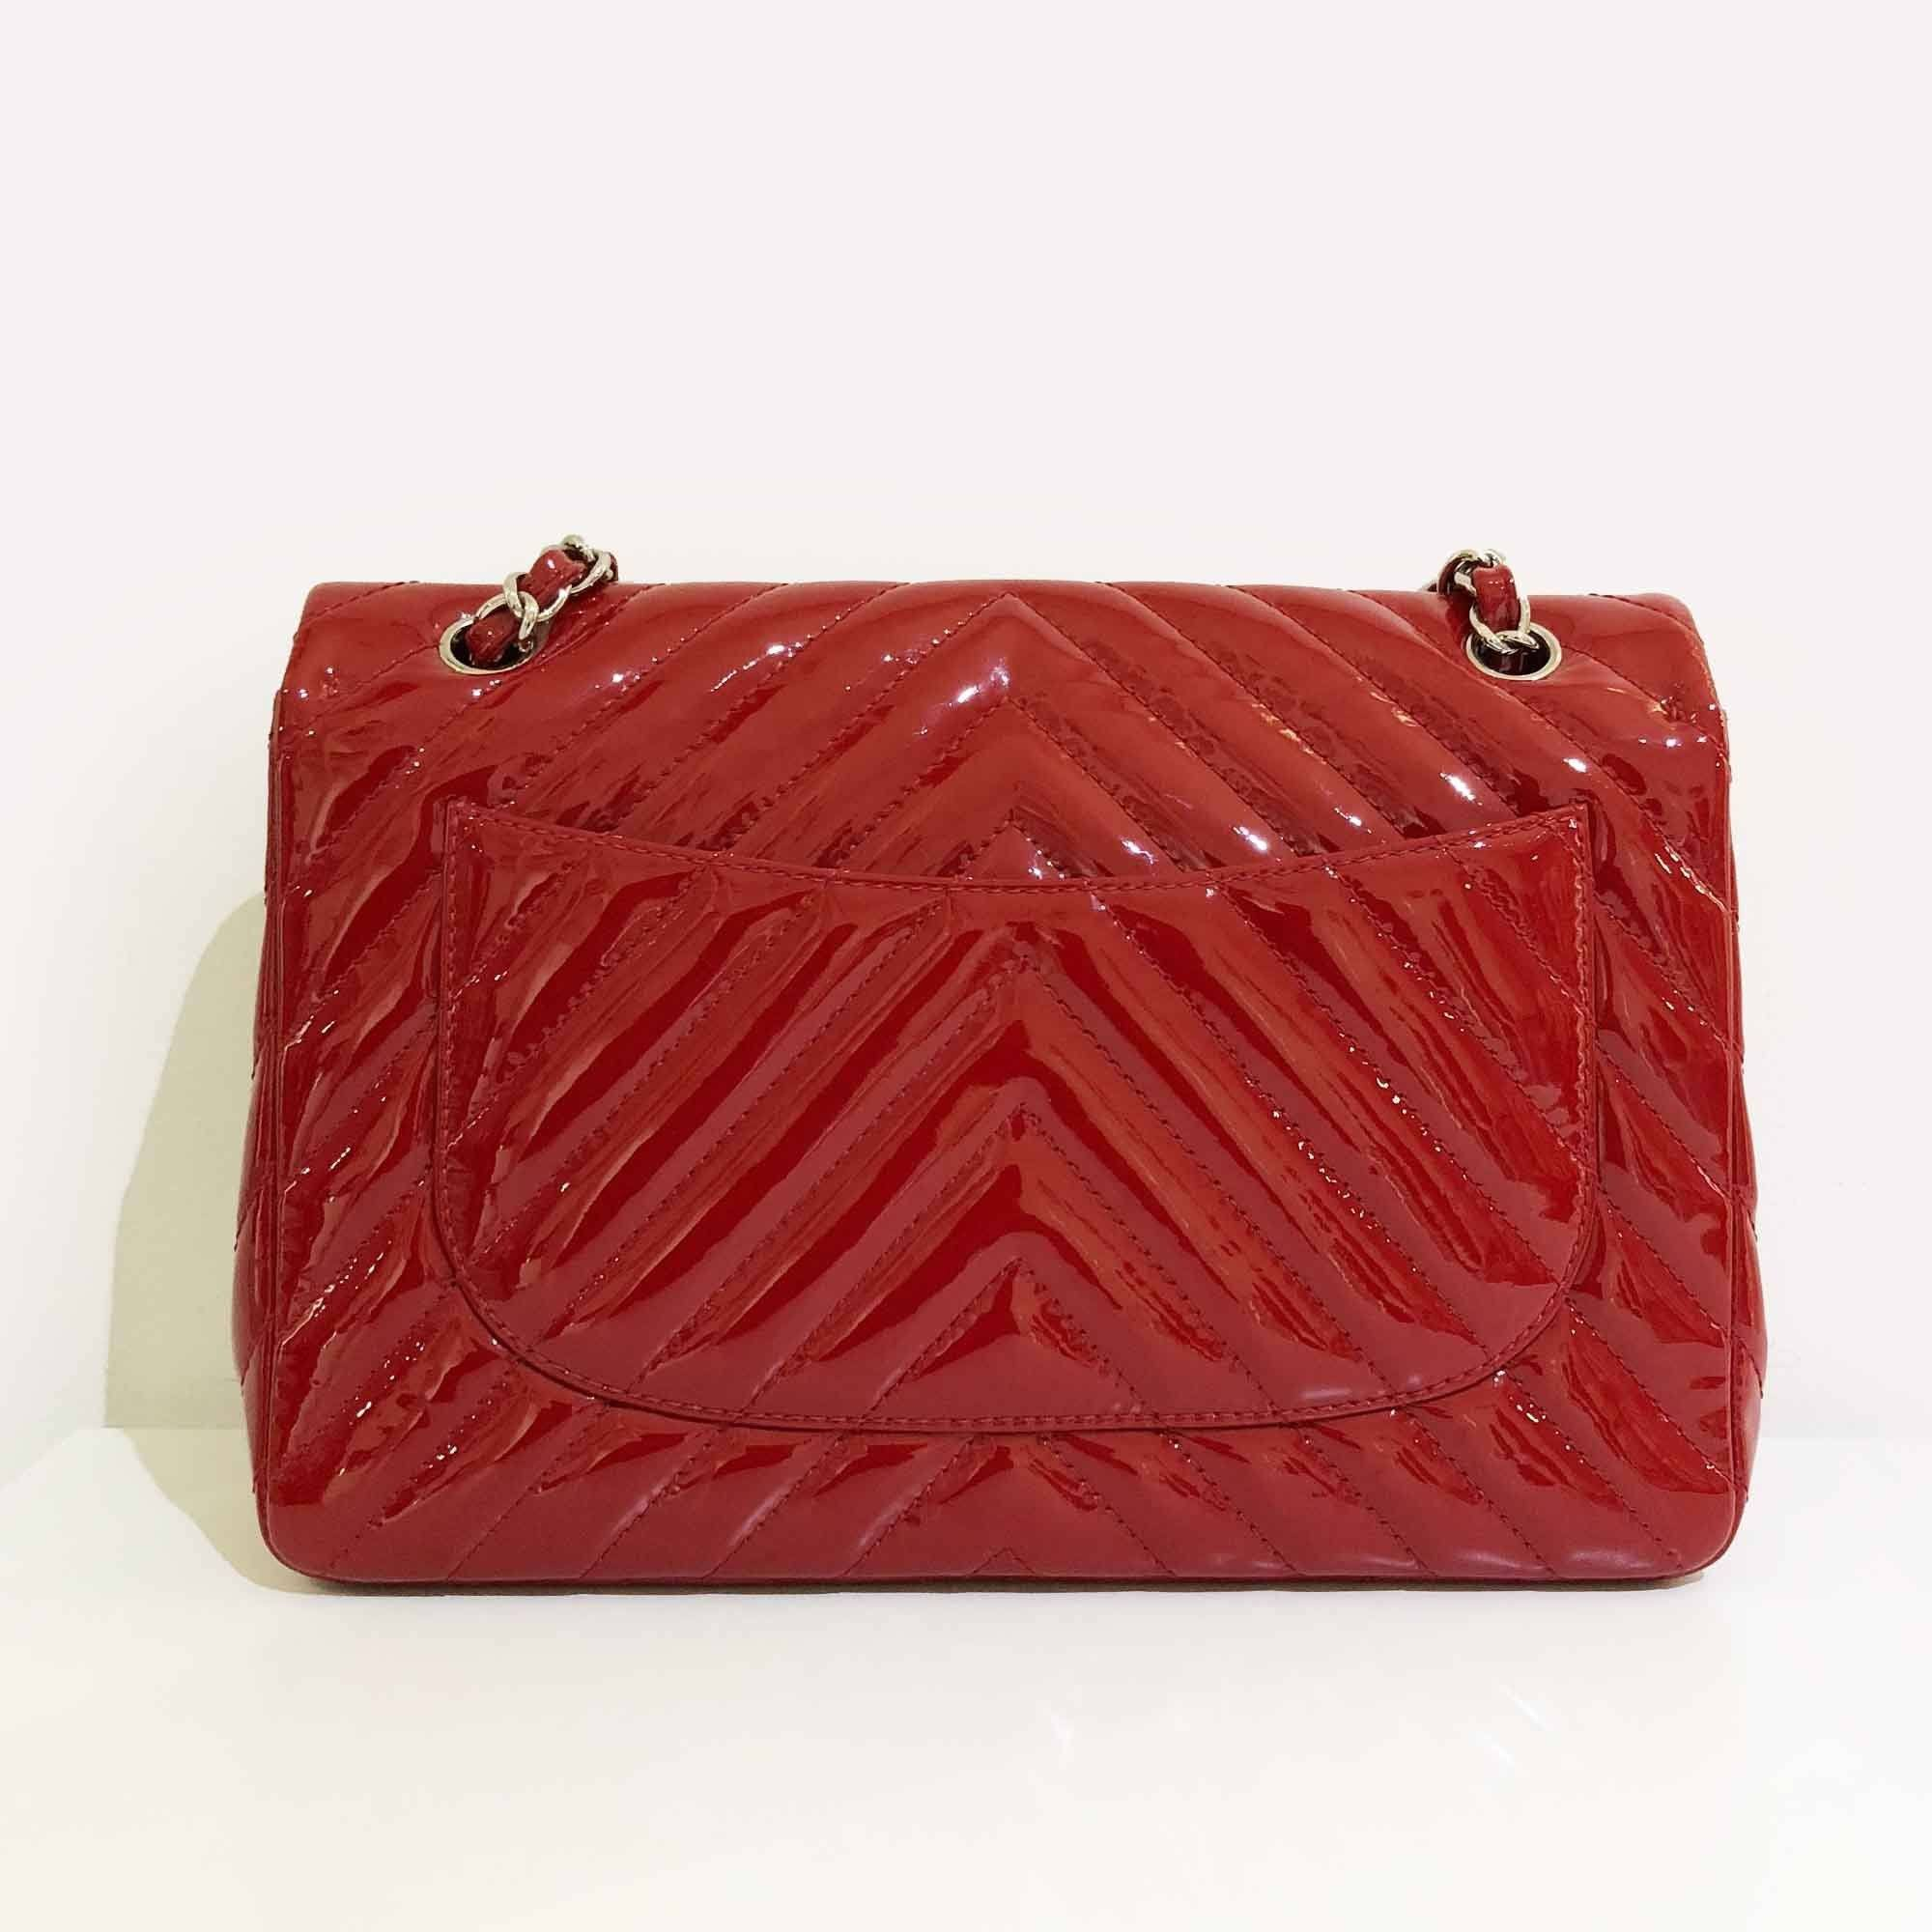 Chanel Dark Red Chevron Jumbo Flap Bag